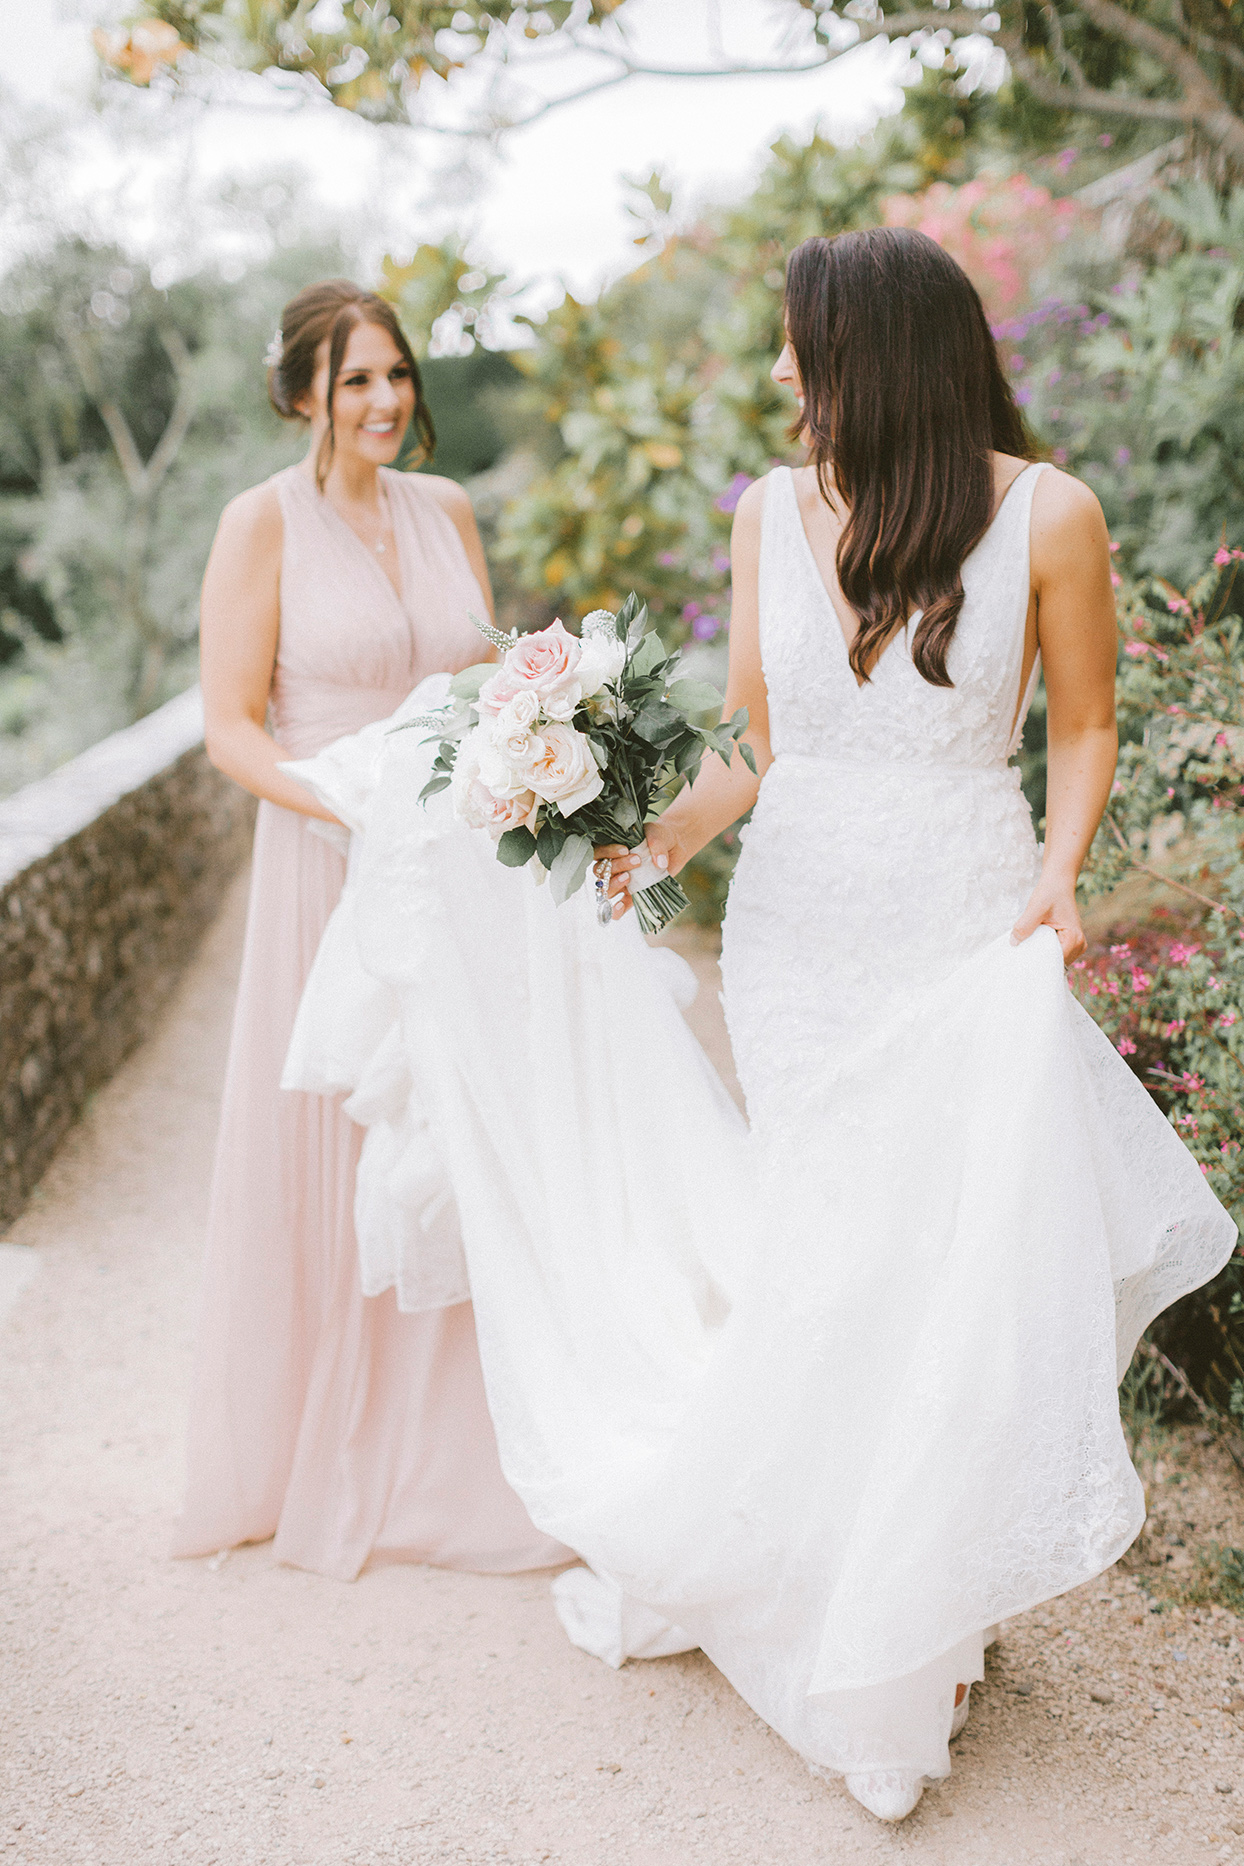 bridesmaid holding up bride's dress train on gravel path